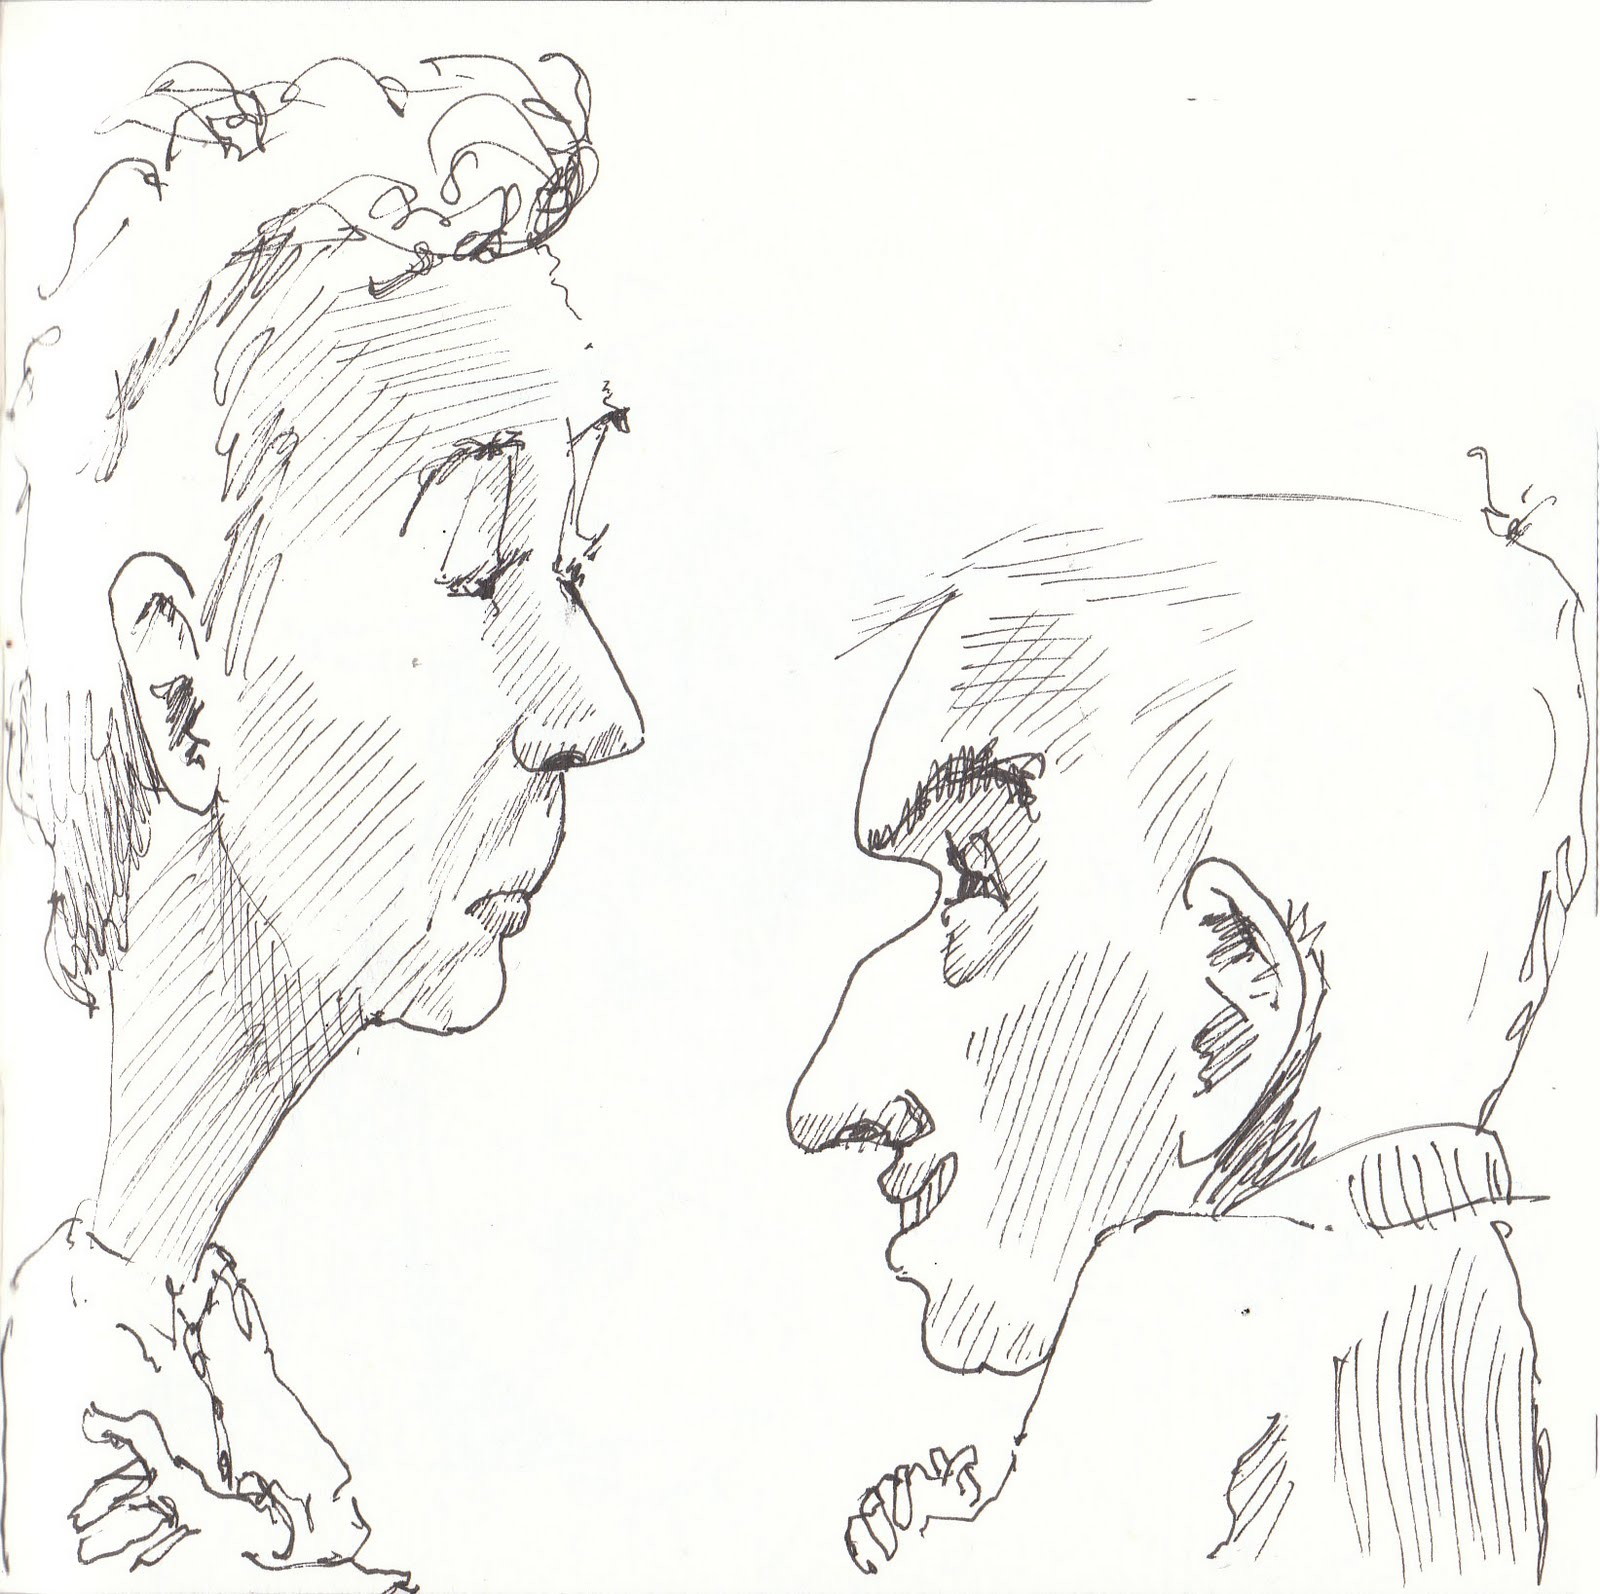 Philippa Randles Illustration: some fun quick caricatures...